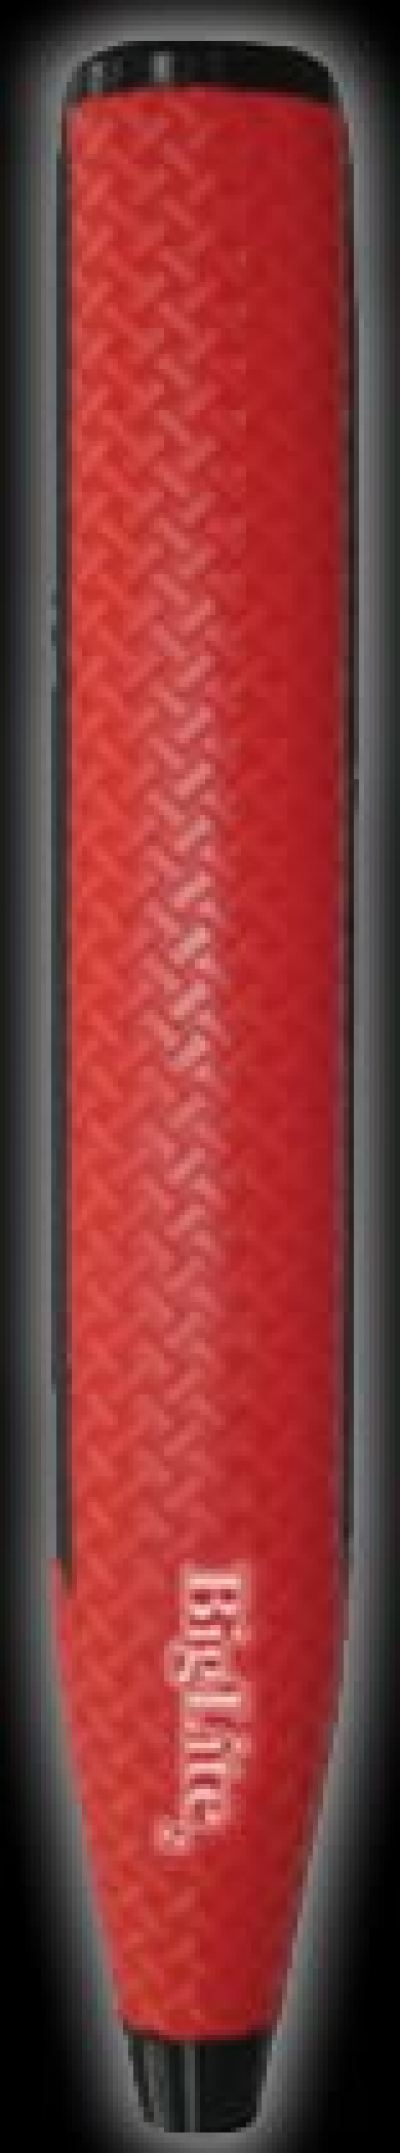 BigLite2 Golf Grip